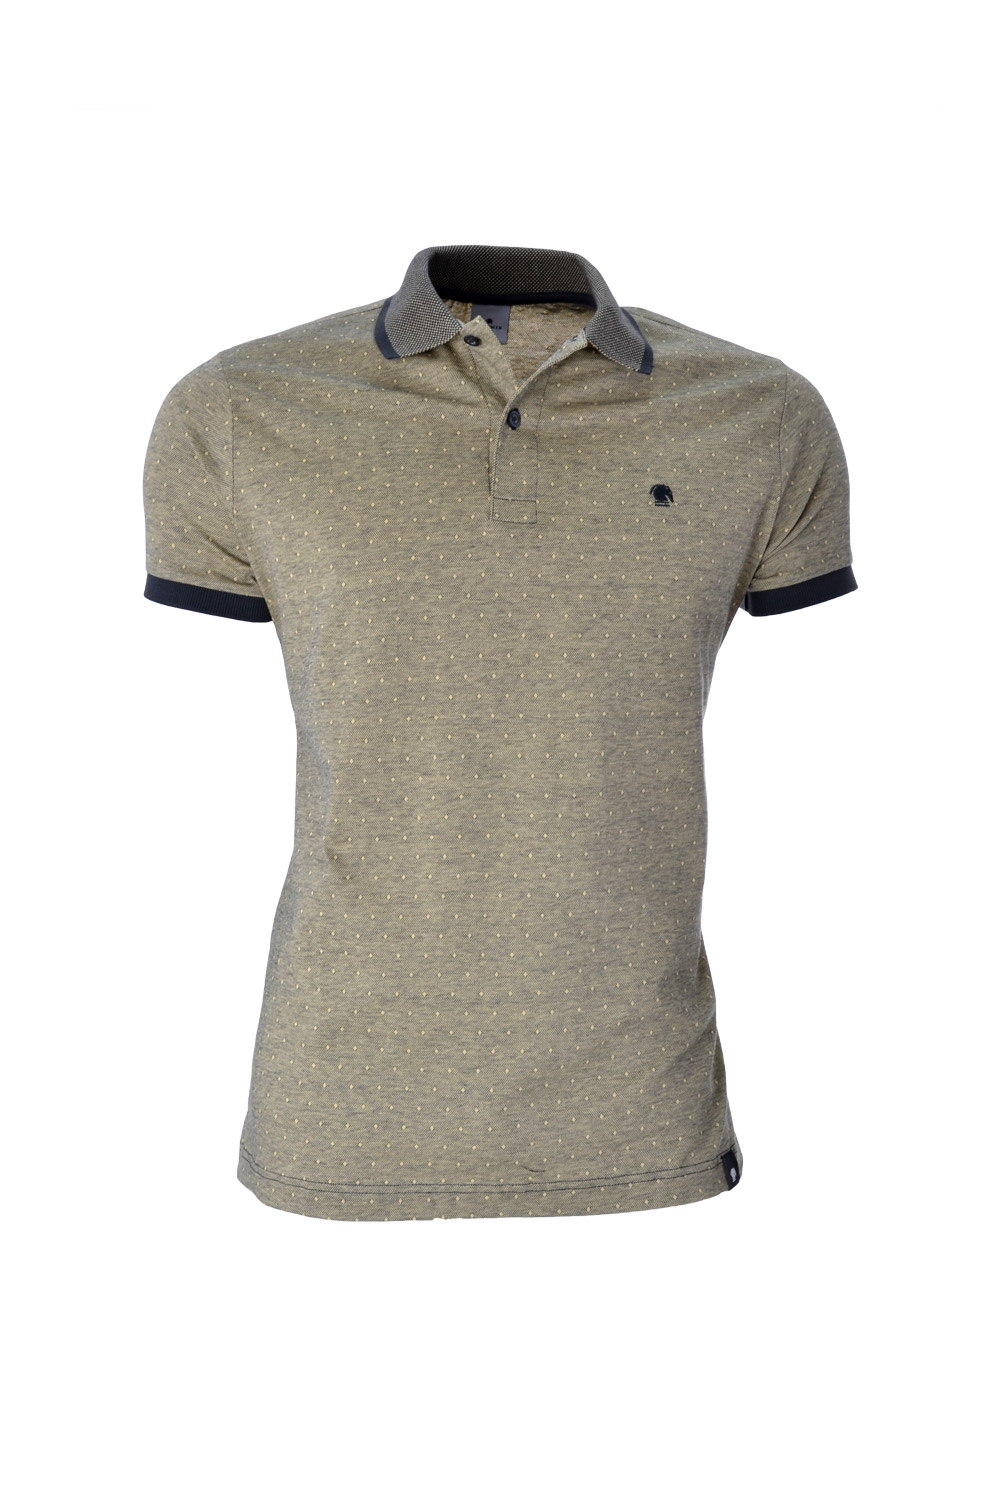 POLO MC CASUAL ALGODAO & ELASTANO STRETCH PIQUET BINADO DOT